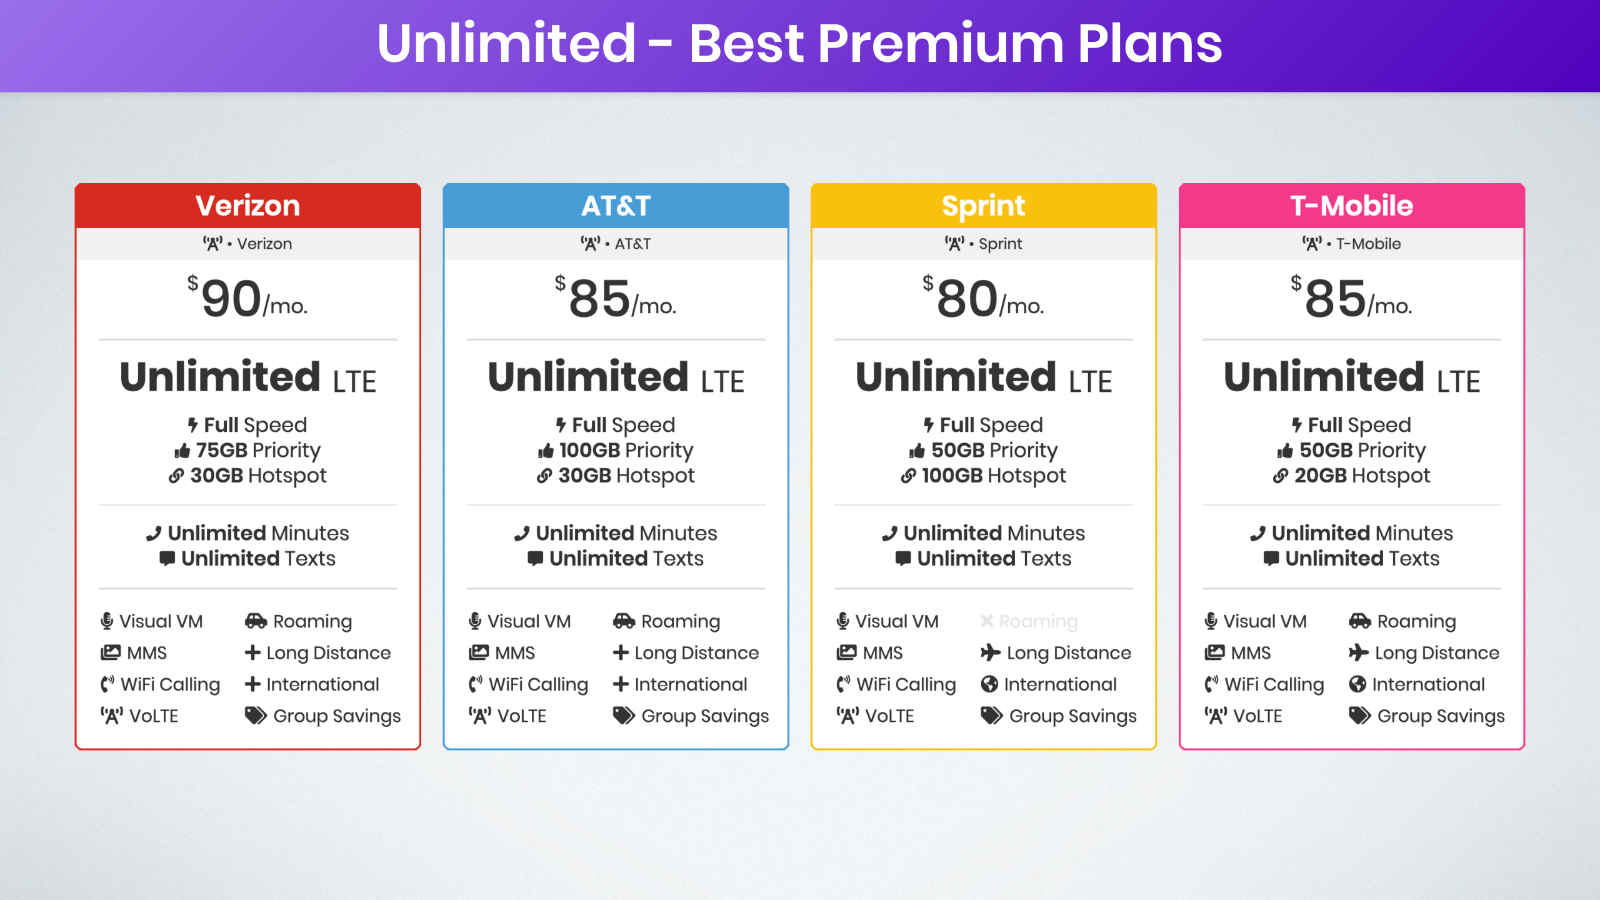 best premium unlimited data plans on Verizon, AT&T, Sprint, and T-Mobile